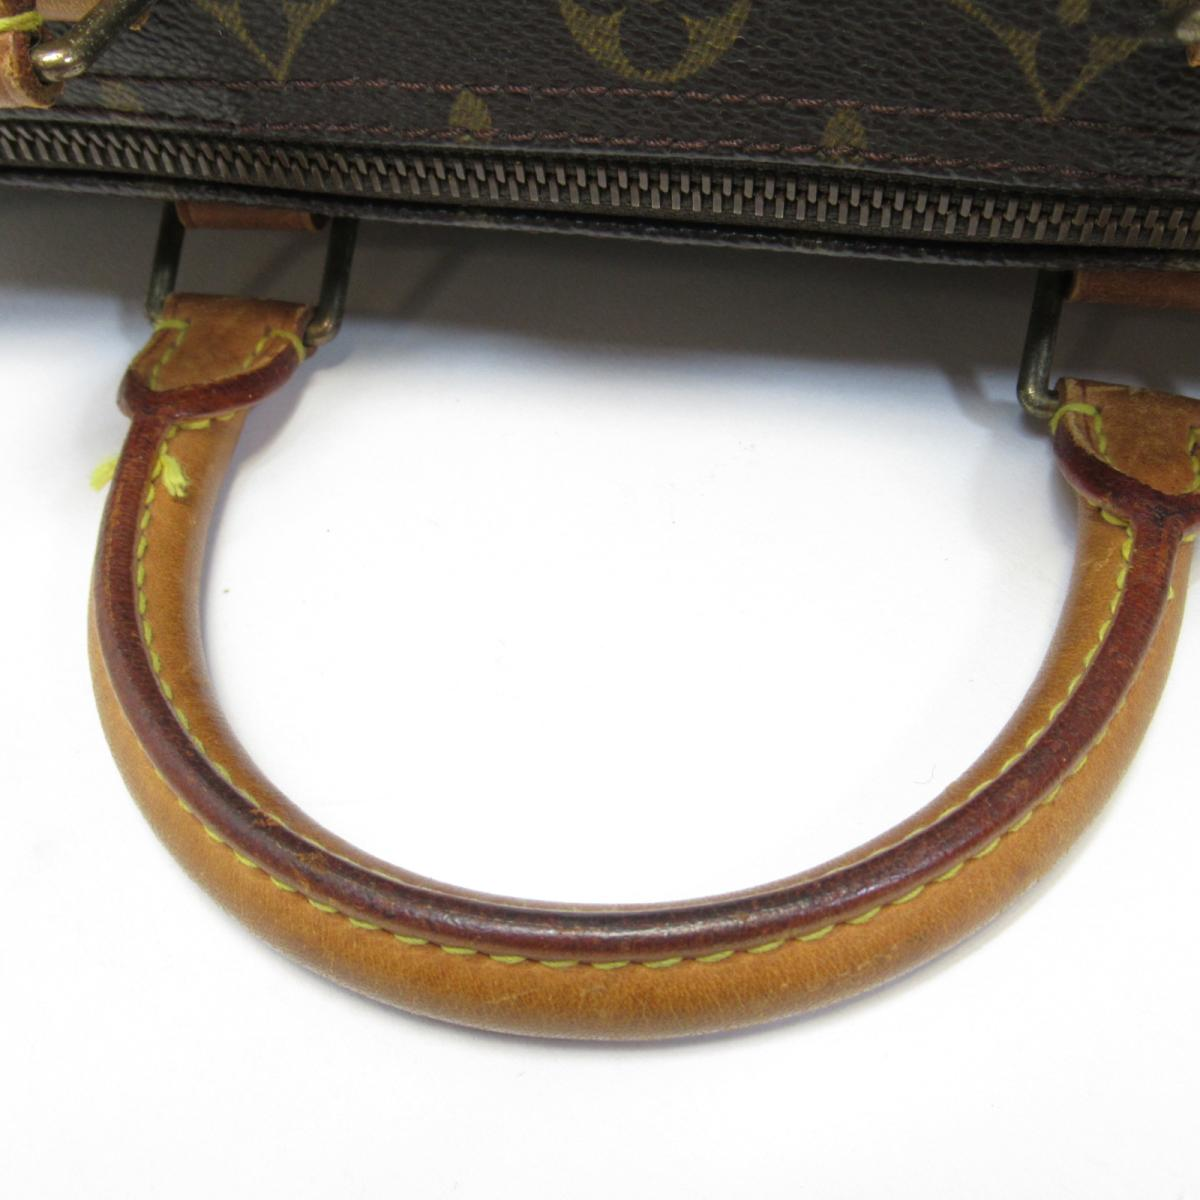 LOUIS VUITTON LOUIS VUITTON バッグ M41526 原花手提波士頓包 Speedy 30 M41526